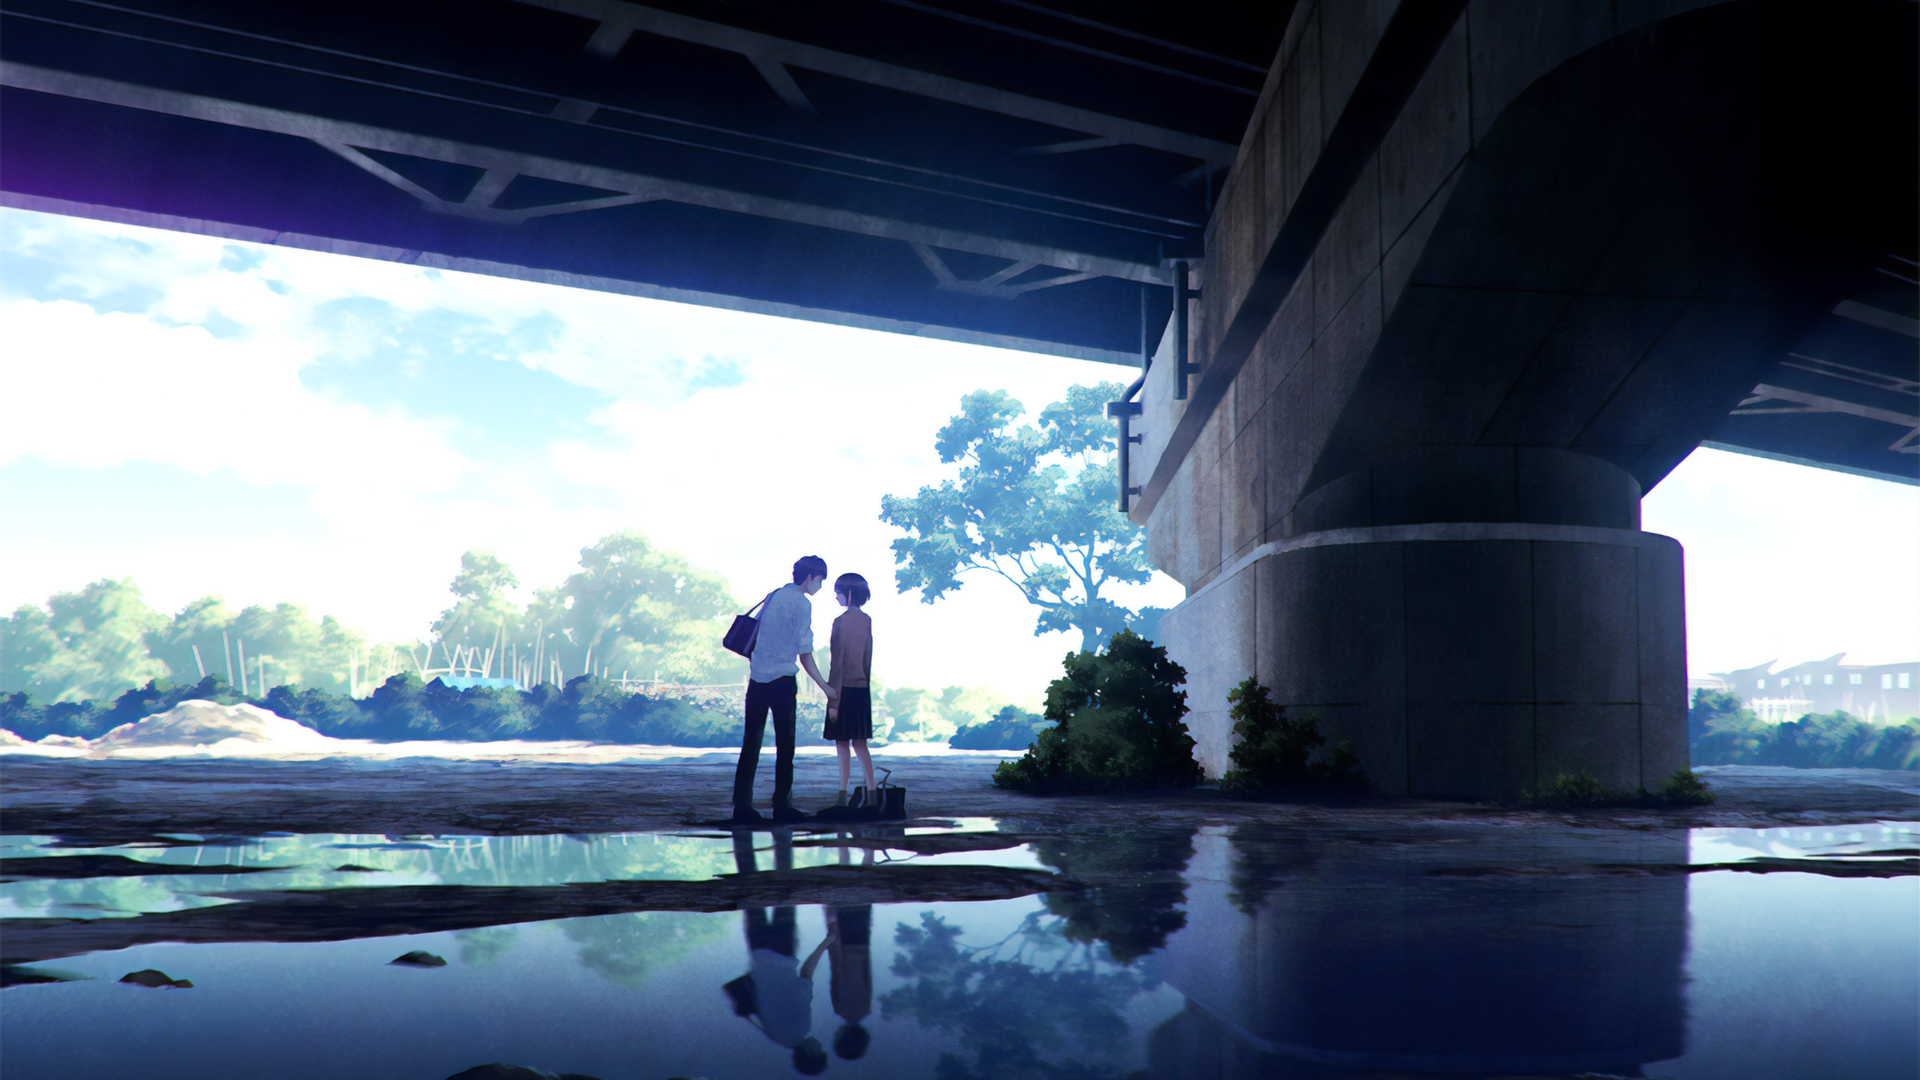 anime-couple-meeting-under-bridge-4k-v5.jpg